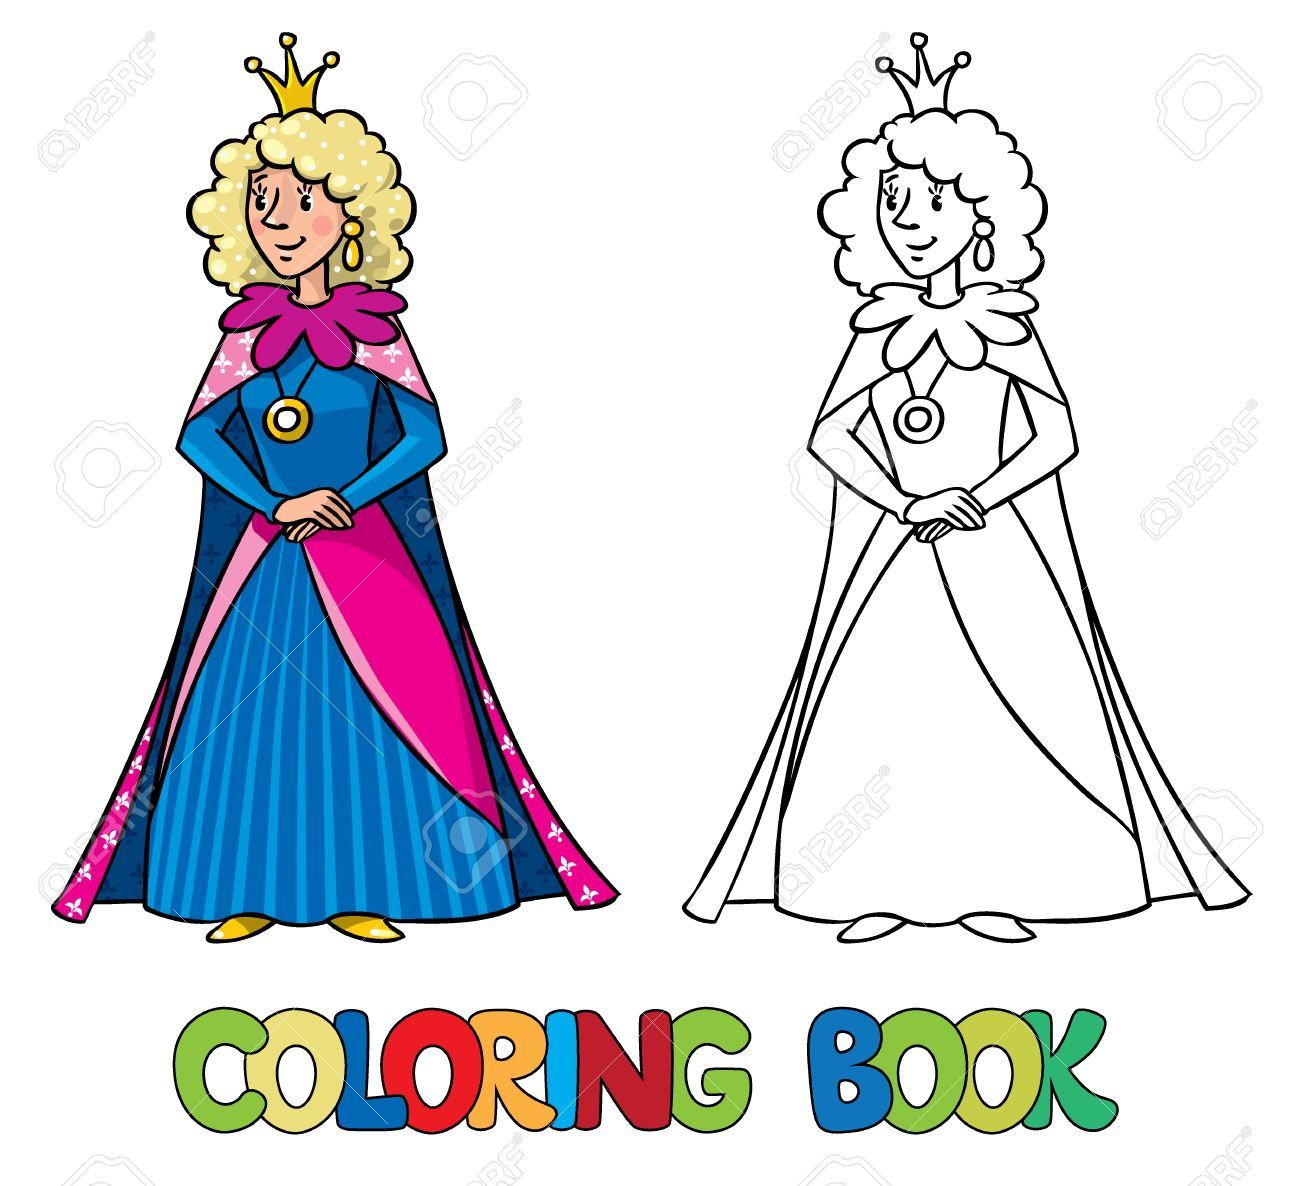 Coloring book princess crowns - Coloring Book Or Coloring Picture Of Beautiful Queen Or Princess In Medieval Dress The Crown